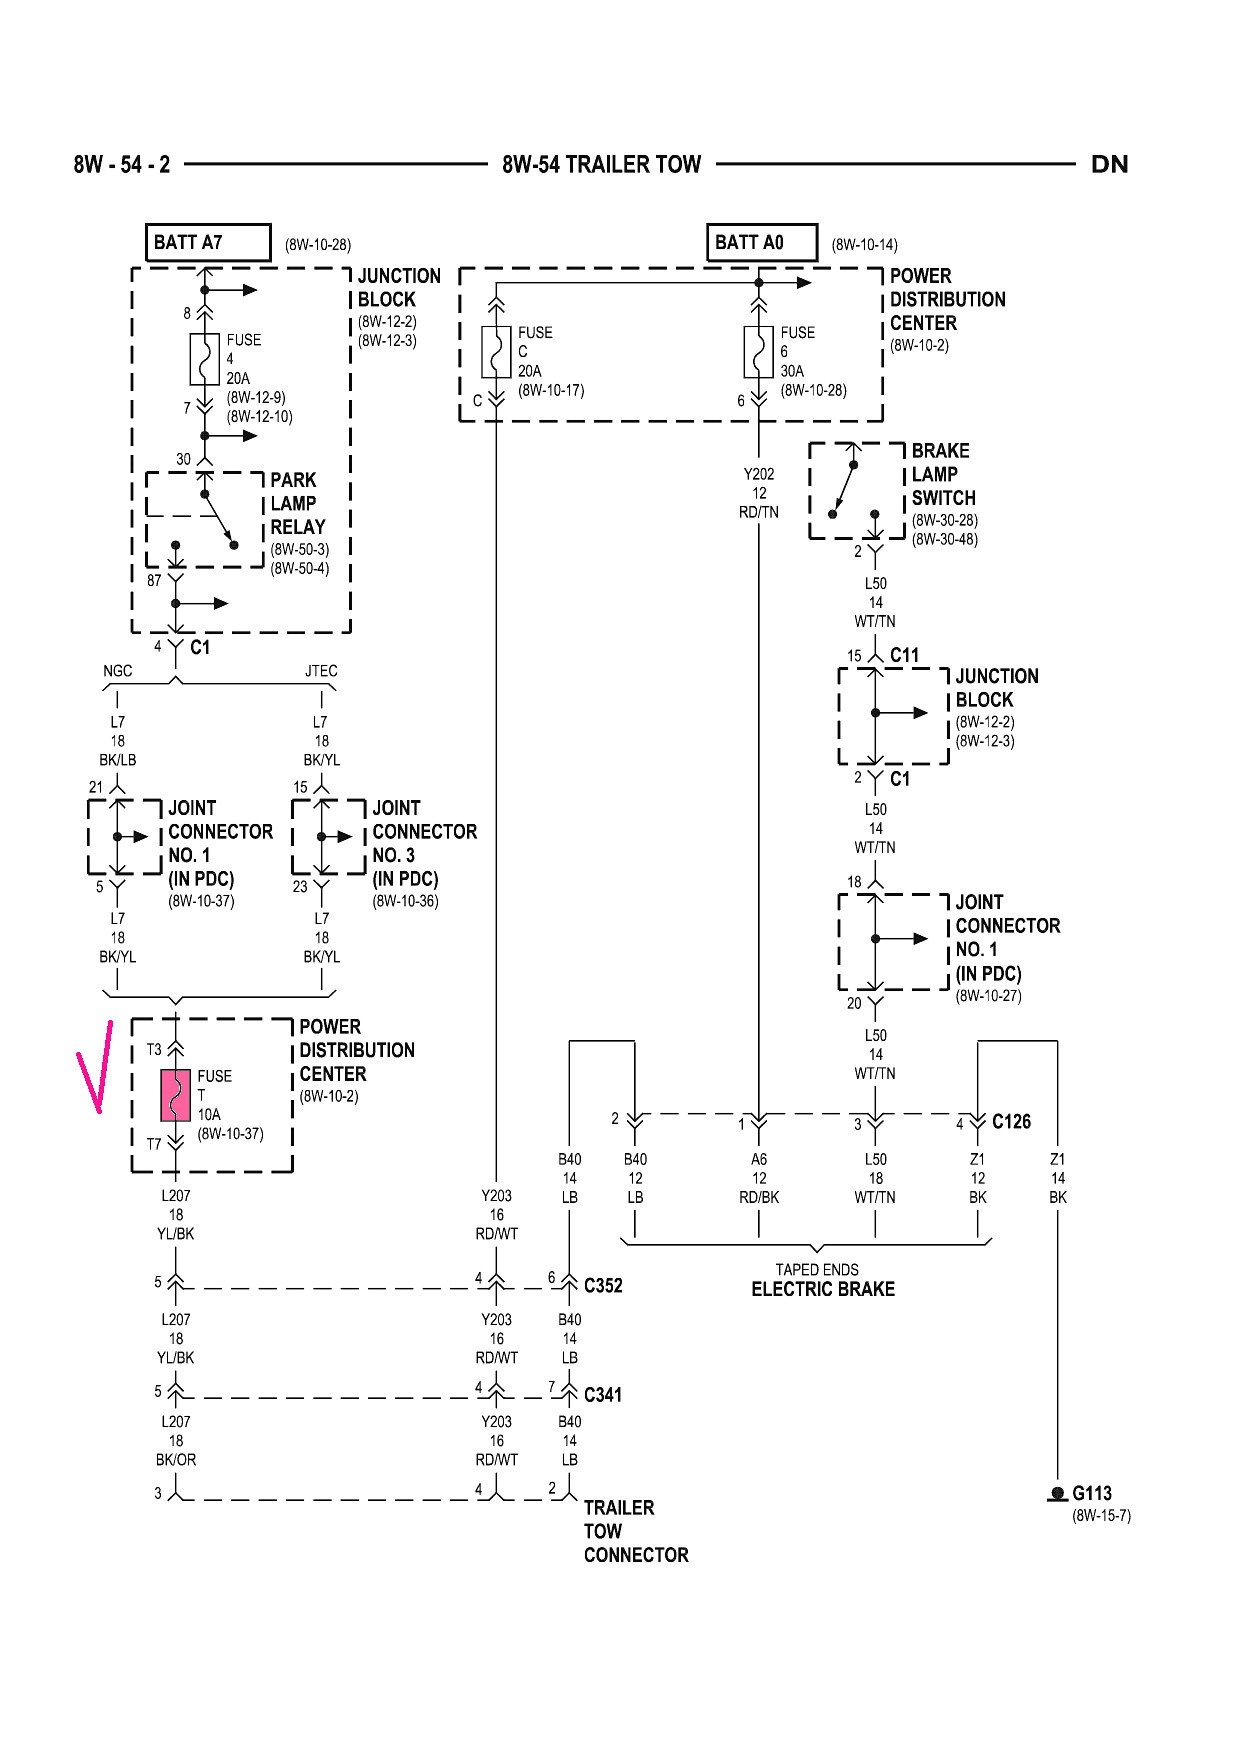 🏆 [DIAGRAM in Pictures Database] Stereo Wiring Diagram For 2003 Dodge Ram  1500 Just Download or Read Ram 1500 - SCHEMATIC-EXAMPLE.ONYXUM.COMOnyxum.com